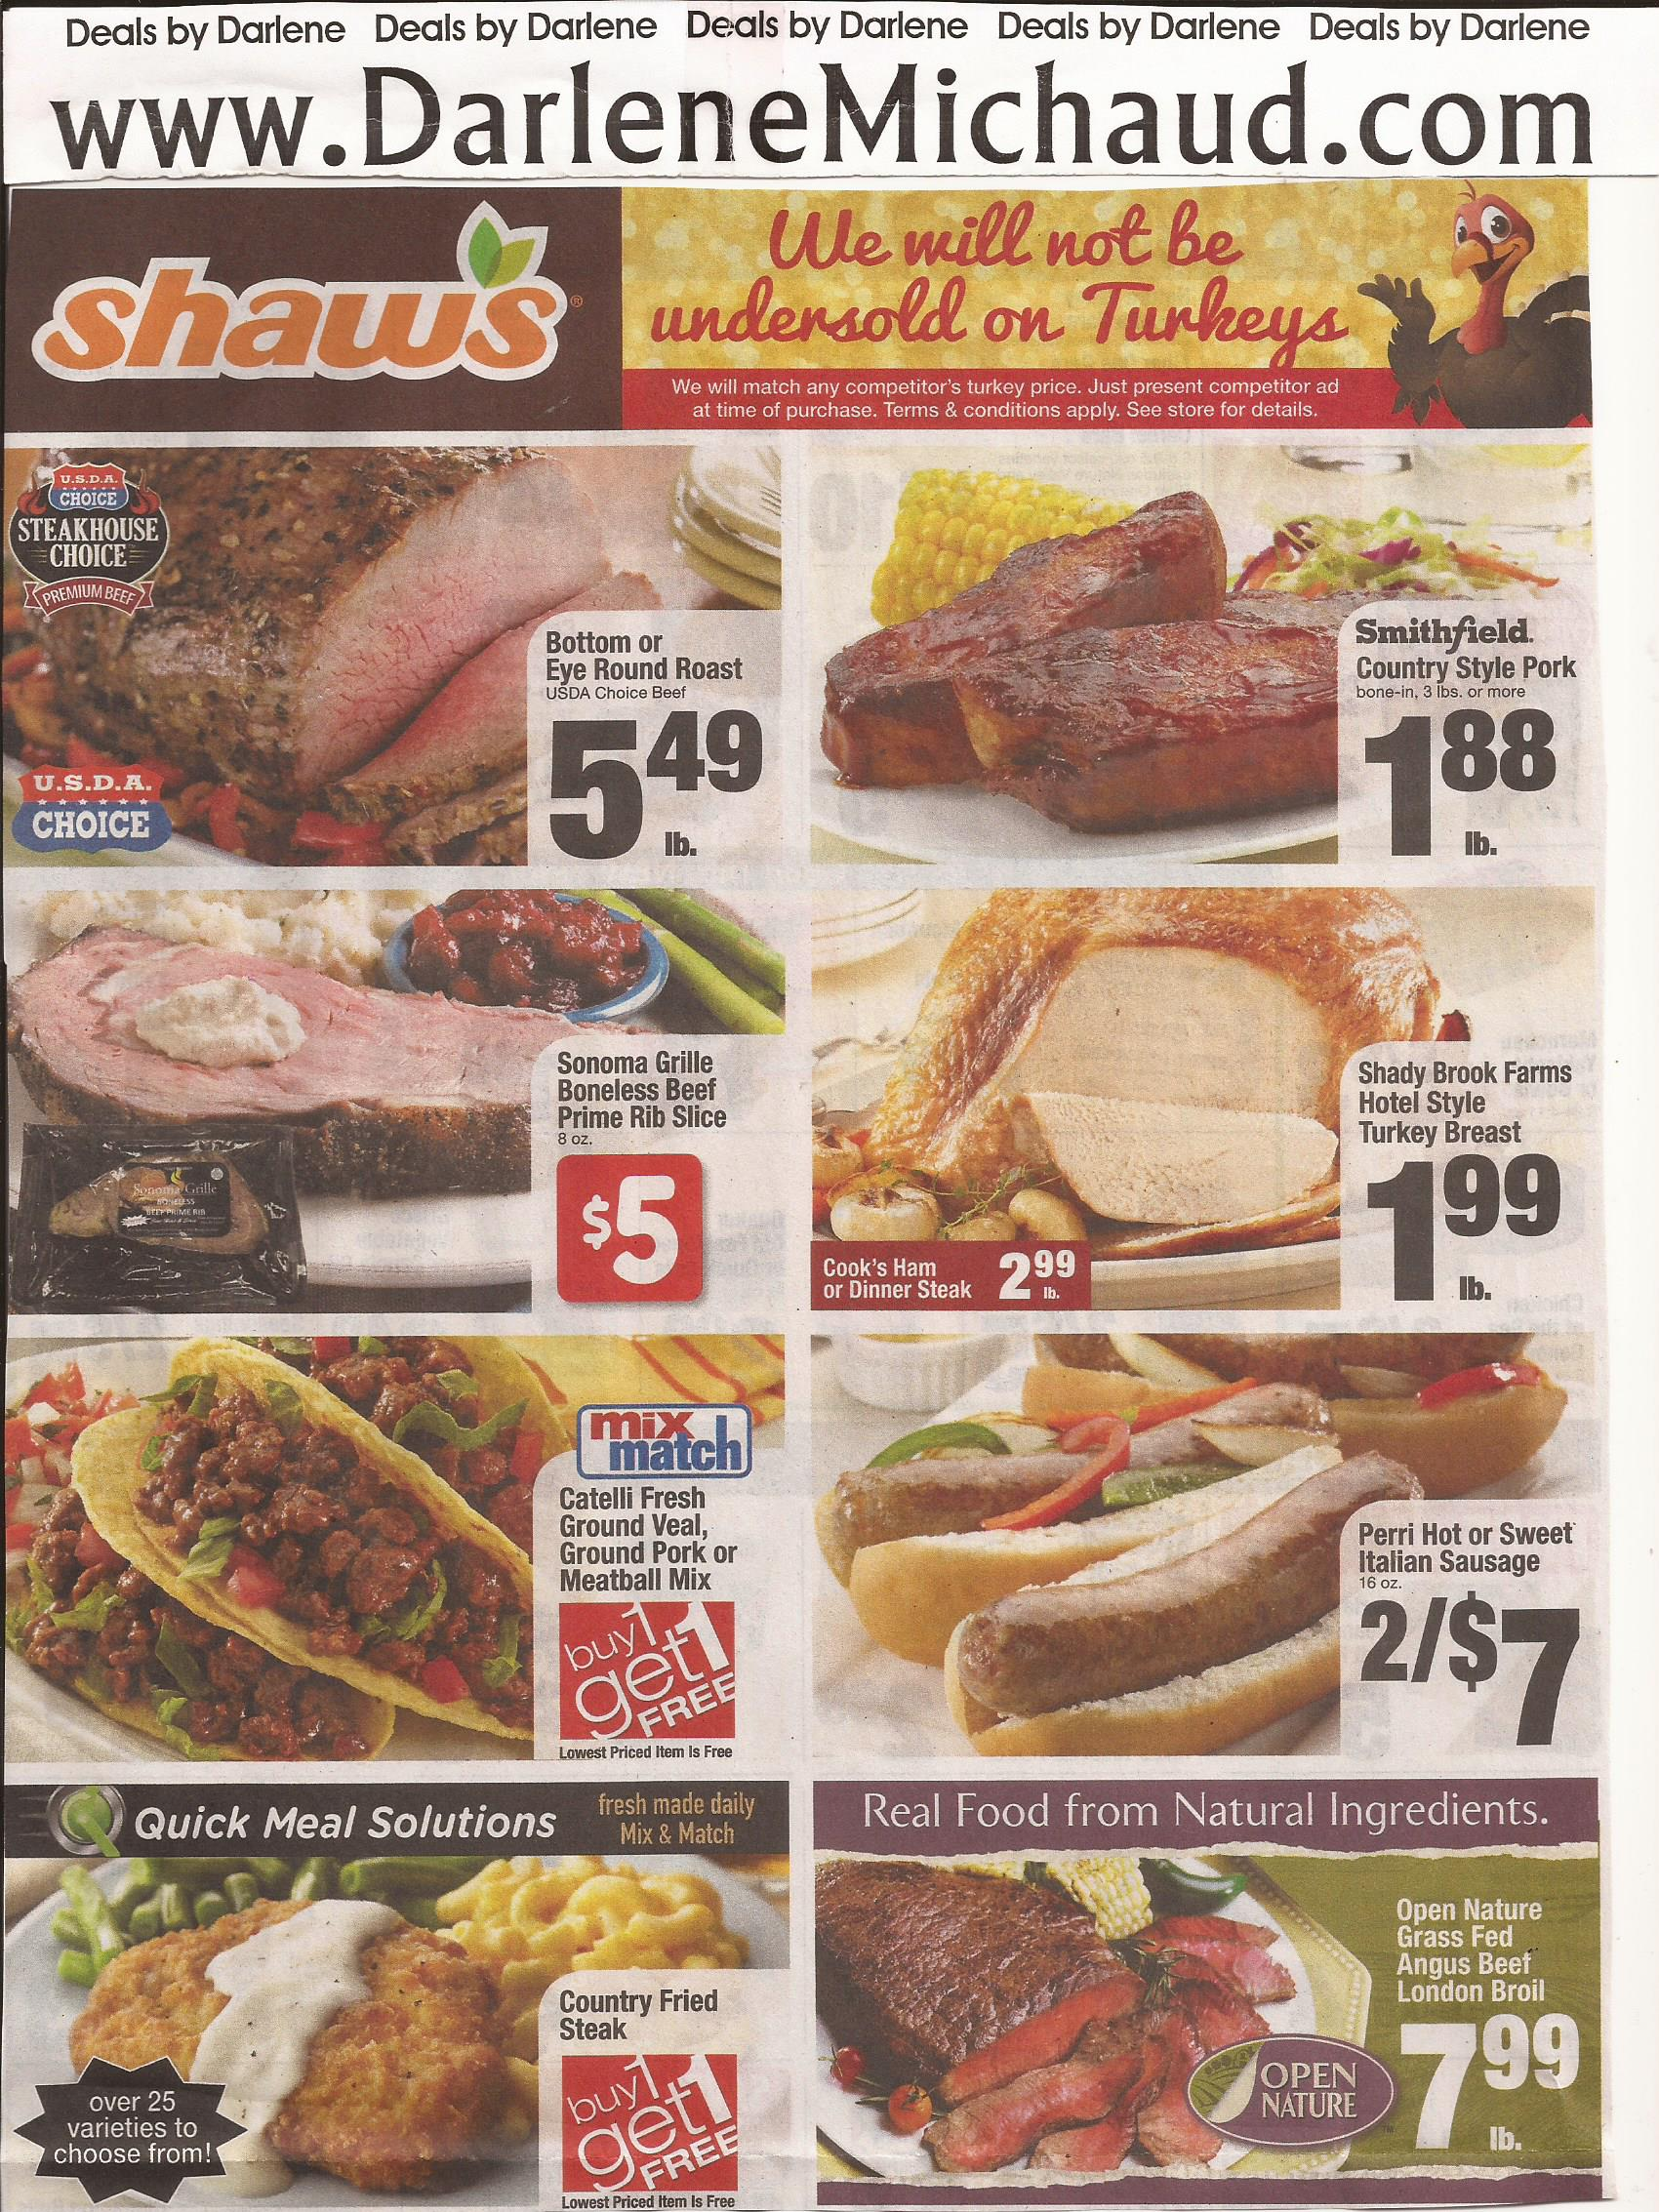 shaws-flyer-oct-30-nov-5-page-3a